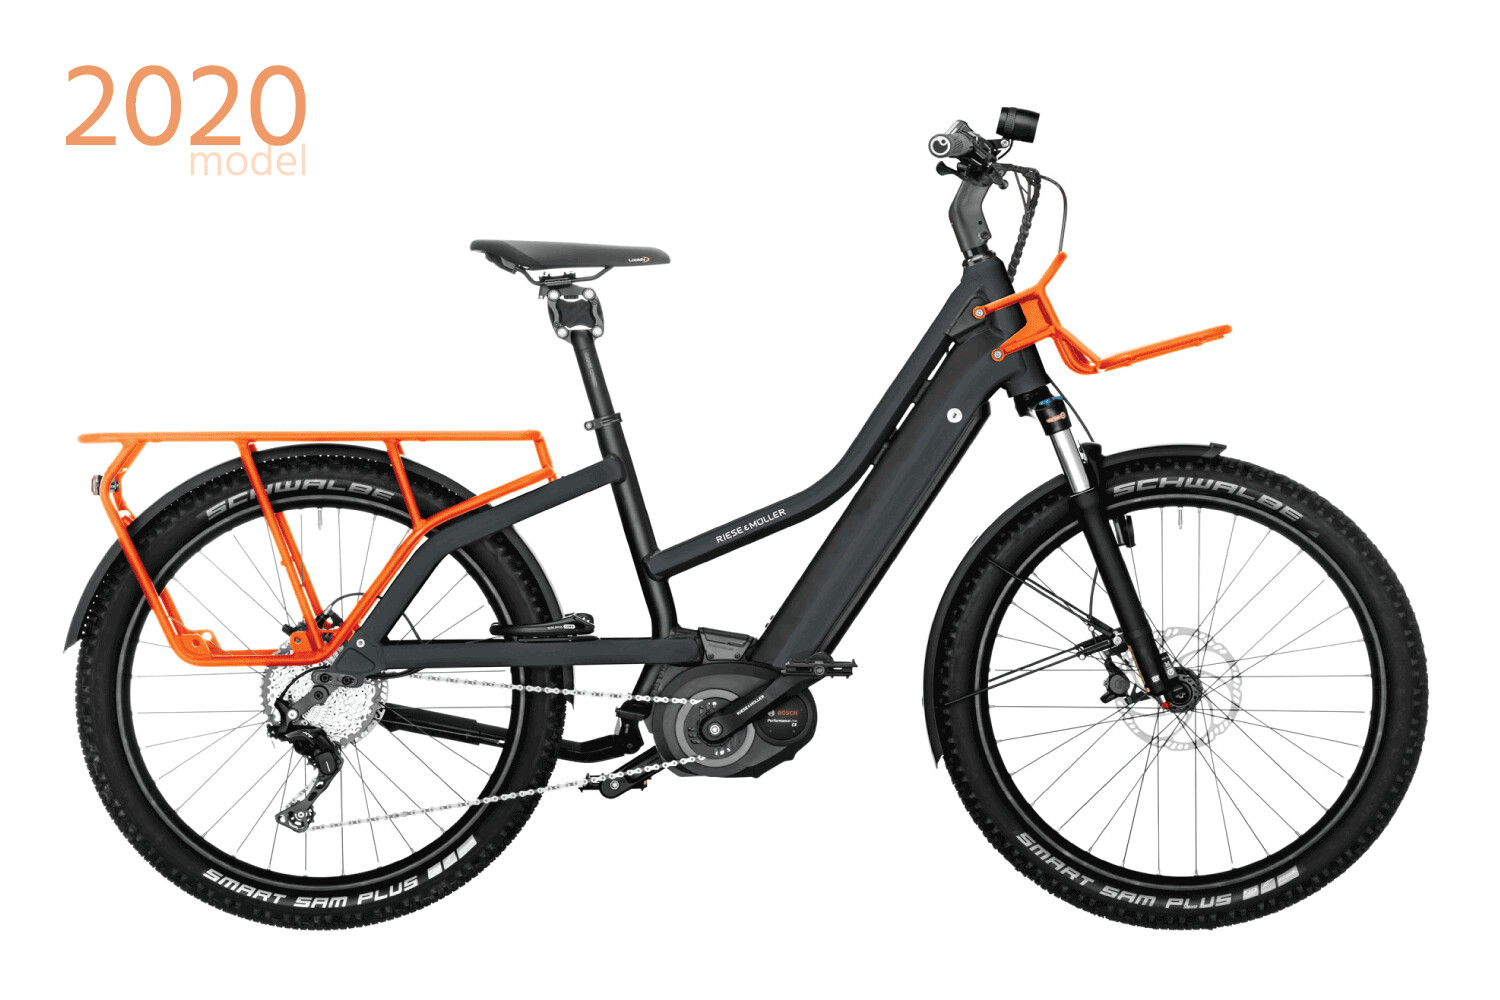 RIESE & MULLER • Multicharger Mixte GT touring